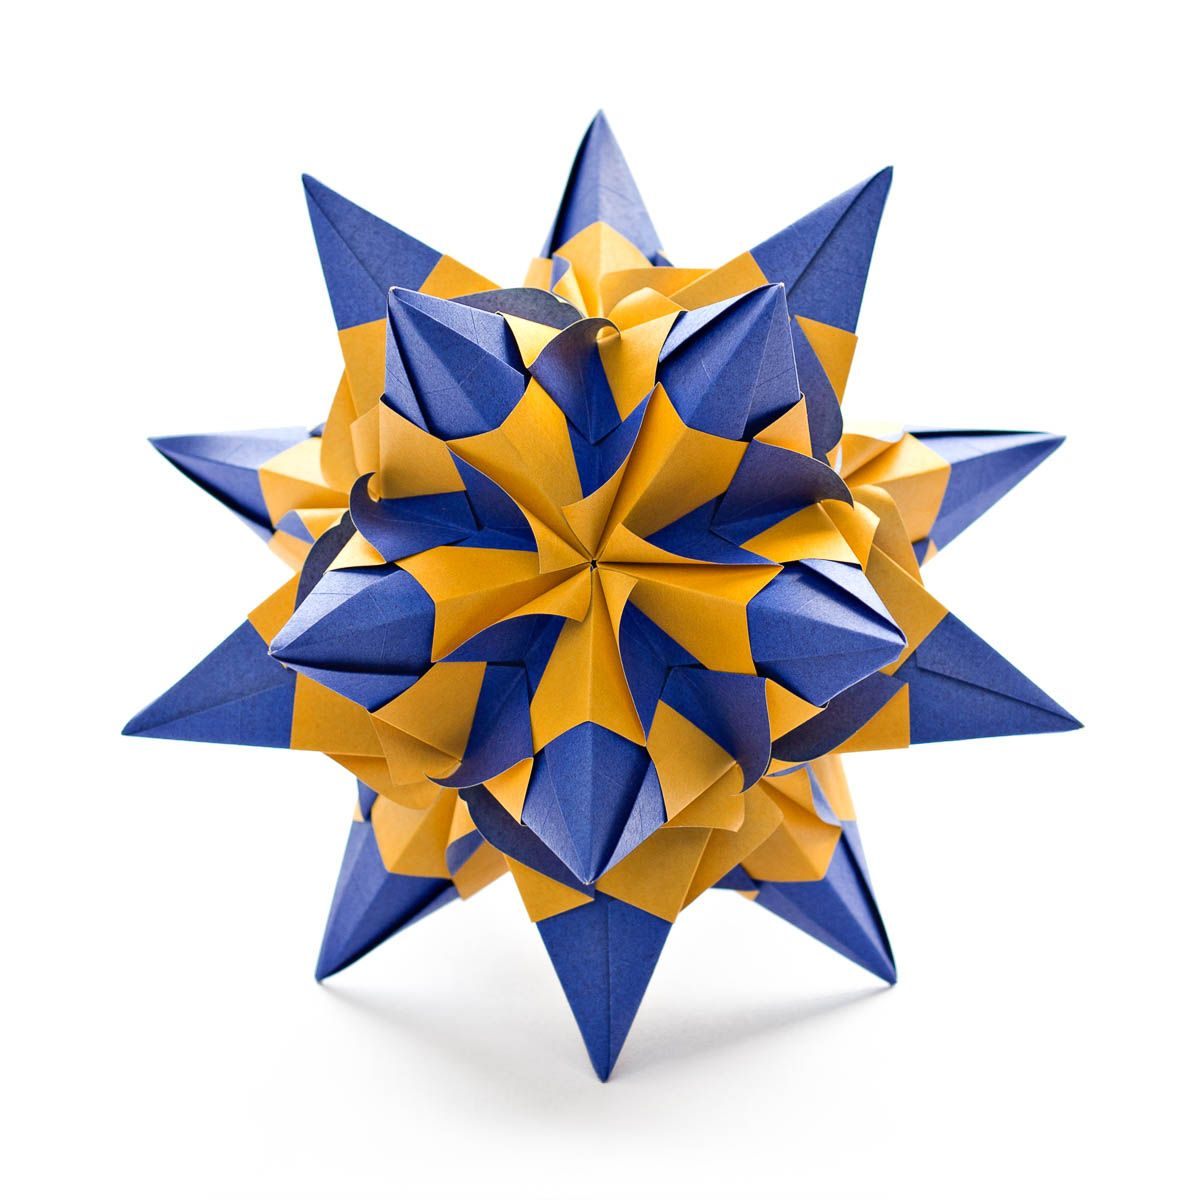 Diagram For A Modular Origami Kusudama Talitha Star Designed By Diagrams Maria Sinayskaya Folded With 30 Square Sheets Of Paper Assembled Without Glue